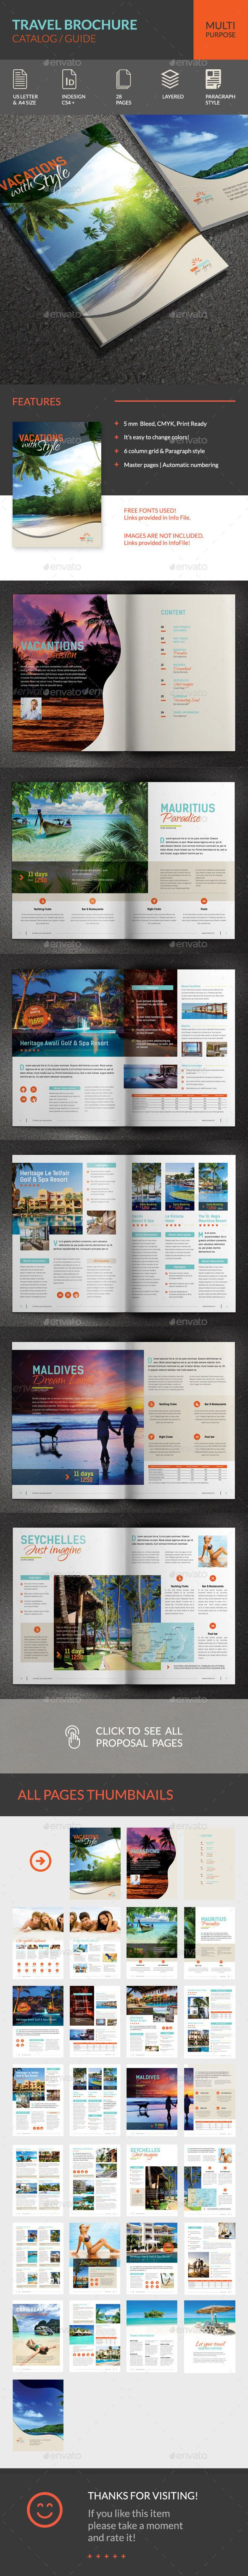 Travel Brochure Template Indesign Indd Download Here Http